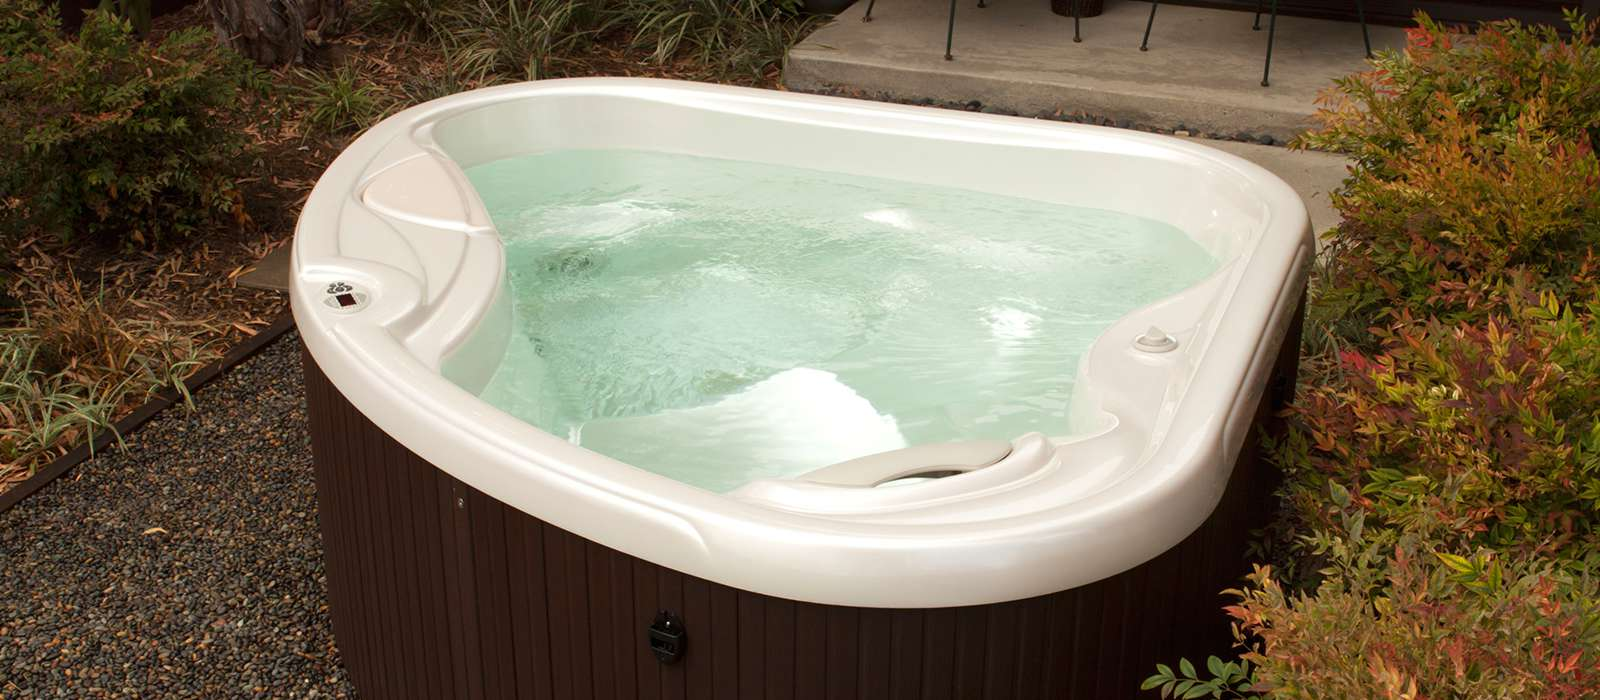 Caring for the TX hot tub is easy with the optional EverFresh® water care system. EverFresh continuously cleans the hot tub with innovative ozone technology.